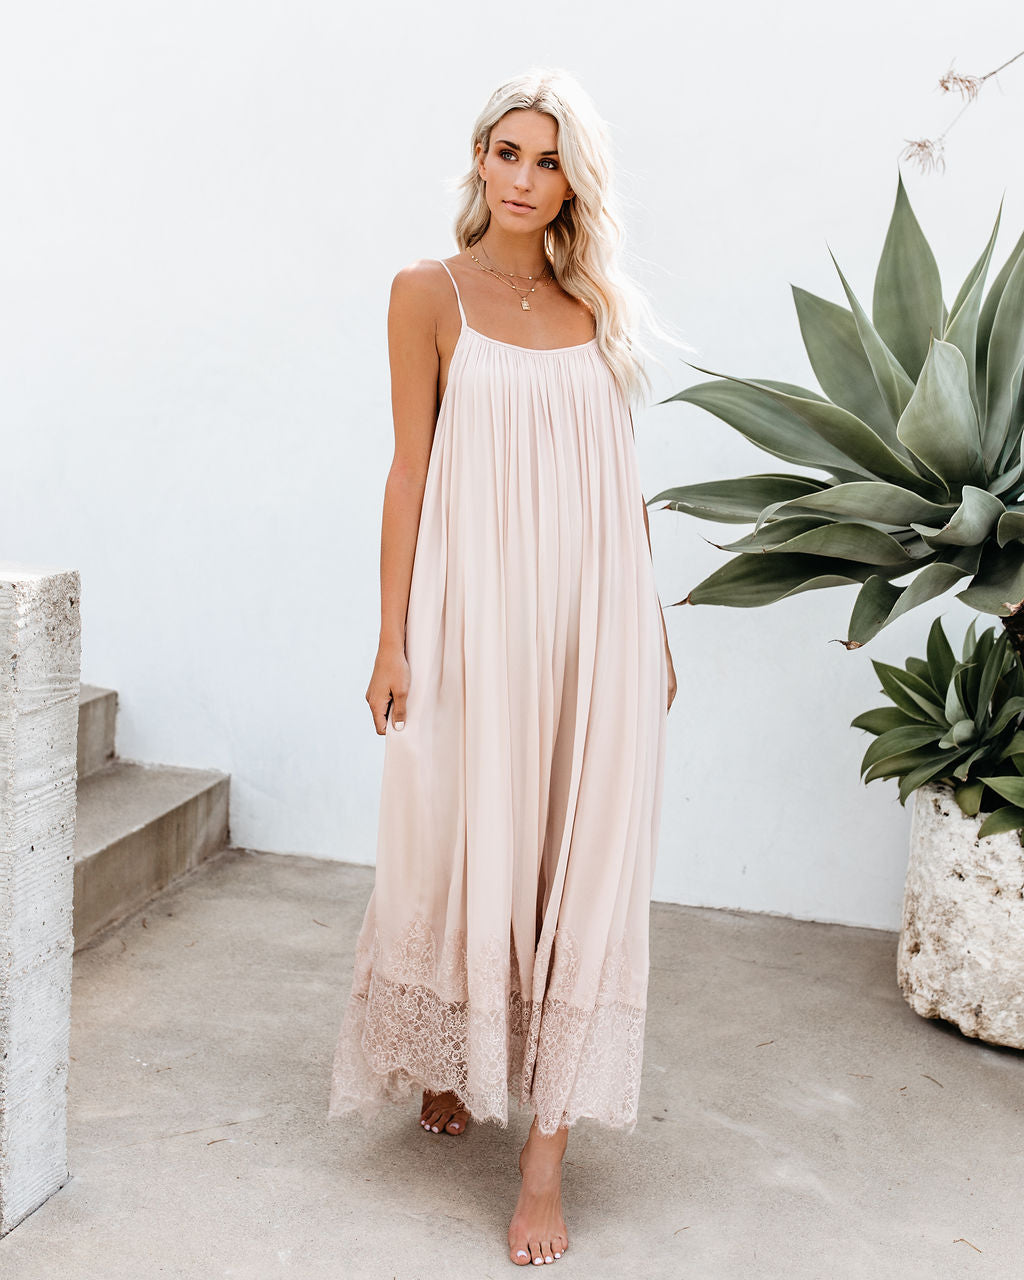 f3c833cee561 Enchanted By Your Love Lace Maxi Dress - Blush – VICI